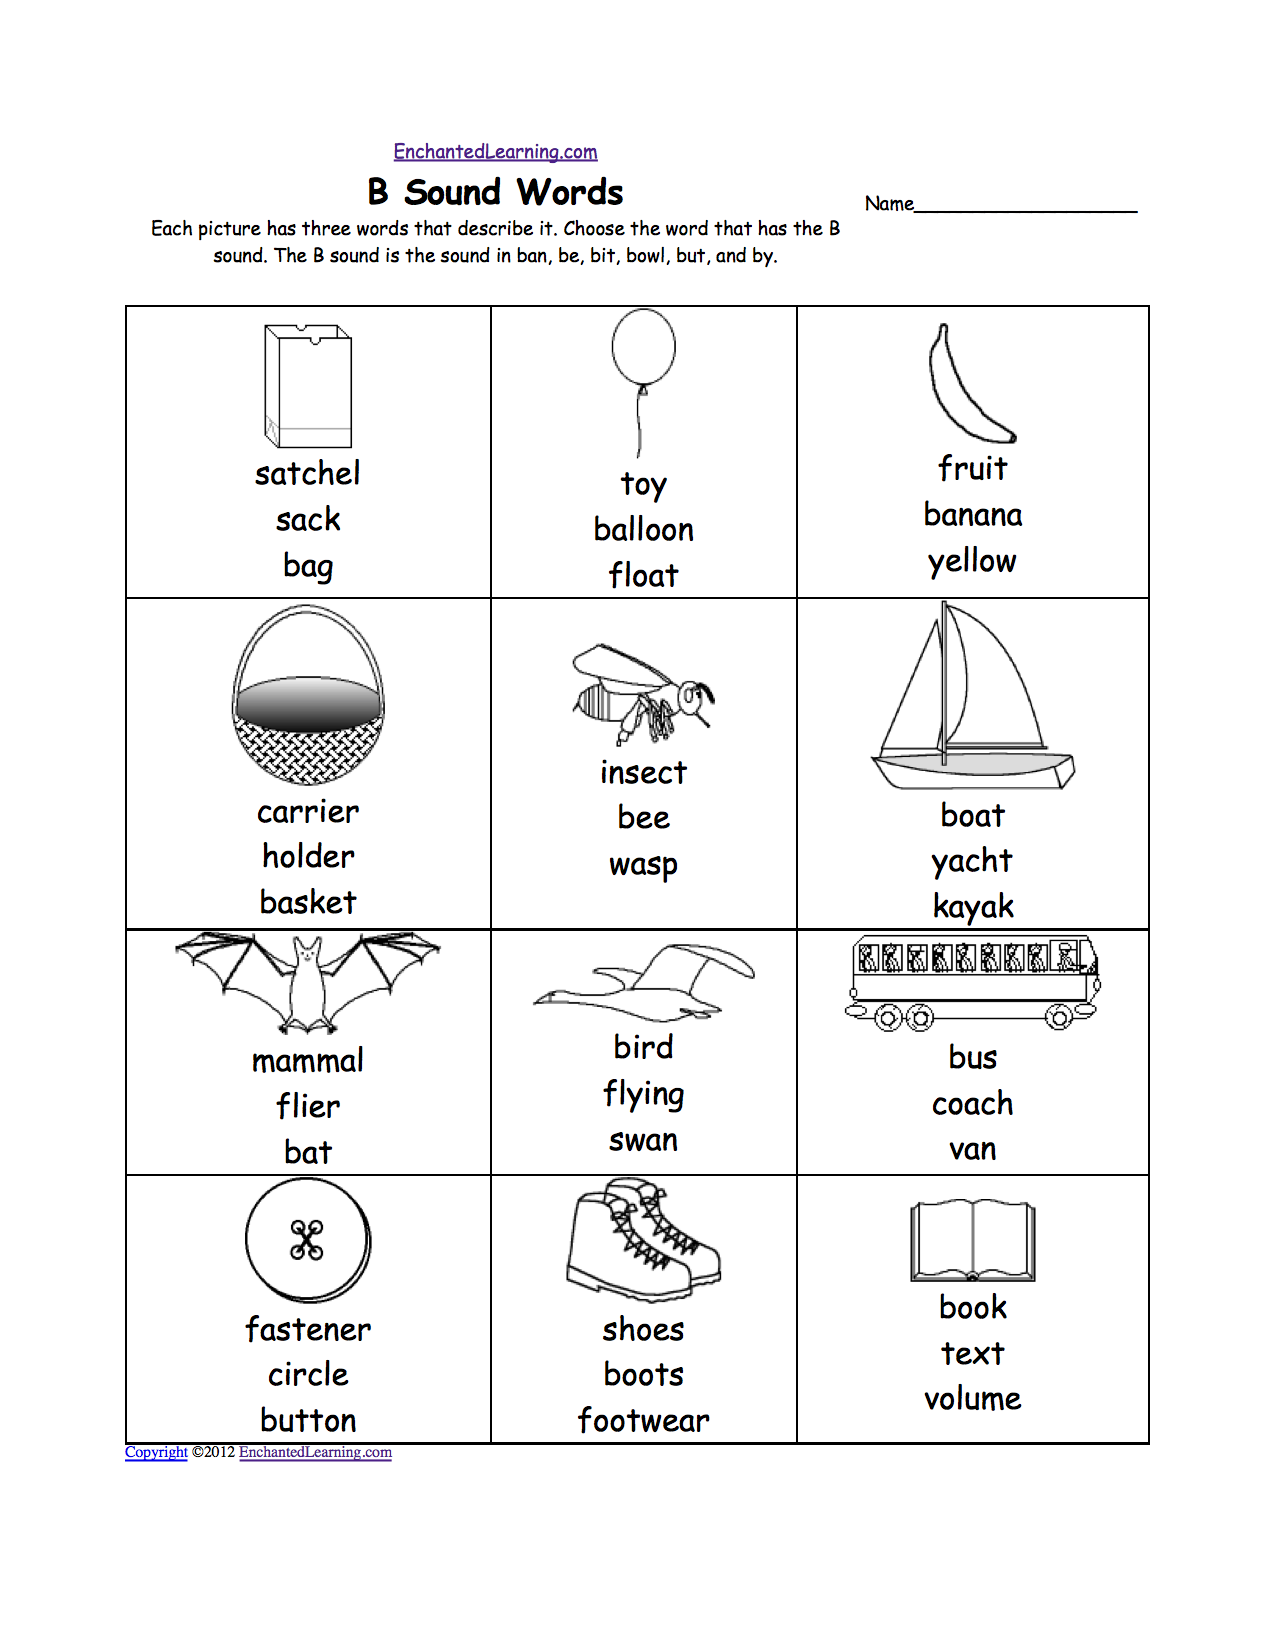 Weirdmailus  Outstanding Phonics Worksheets Multiple Choice Worksheets To Print  With Goodlooking Quotbquot Sound Phonics Worksheet Multiple Choice Each Picture Has Three Words That Describe It Choose The Word That Has A Quotbquot Sound The Quotbquot Sound Is The Sound  With Delectable Summer Vocabulary Worksheets Also Nomenclature Worksheet  Ionic Compounds Containing Transition Metals In Addition Teddy Bear Worksheets And Trust Worksheets For Adults As Well As Patch Adams Movie Worksheet Additionally Rainbow Fish Worksheets Kindergarten From Enchantedlearningcom With Weirdmailus  Goodlooking Phonics Worksheets Multiple Choice Worksheets To Print  With Delectable Quotbquot Sound Phonics Worksheet Multiple Choice Each Picture Has Three Words That Describe It Choose The Word That Has A Quotbquot Sound The Quotbquot Sound Is The Sound  And Outstanding Summer Vocabulary Worksheets Also Nomenclature Worksheet  Ionic Compounds Containing Transition Metals In Addition Teddy Bear Worksheets From Enchantedlearningcom